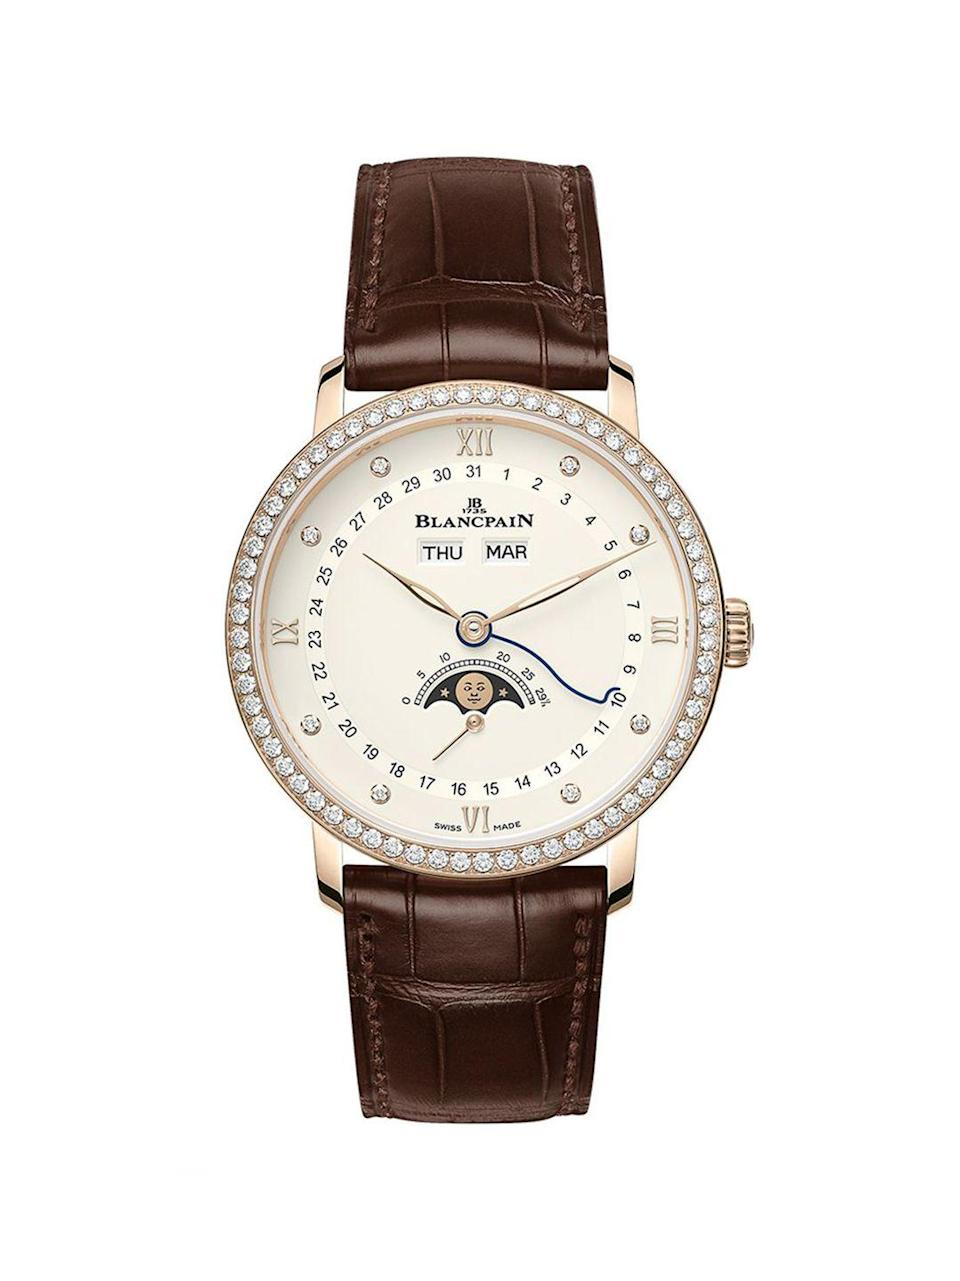 "<p><a class=""link rapid-noclick-resp"" href=""https://www.blancpain.com/en/villeret/villeret-quantieme-complet-6264-2987-55b"" rel=""nofollow noopener"" target=""_blank"" data-ylk=""slk:SHOP NOW"">SHOP NOW</a></p><p>The moon-phase dial incorporated into Blancpain's latest Villeret watch has actually been a brand speciality for four decades.</p><p>Villeret Quantième Complet watch, £22,300, <a href=""https://www.blancpain.com/en/villeret/villeret-quantieme-complet-6264-2987-55b"" rel=""nofollow noopener"" target=""_blank"" data-ylk=""slk:Blancpain"" class=""link rapid-noclick-resp"">Blancpain</a></p>"